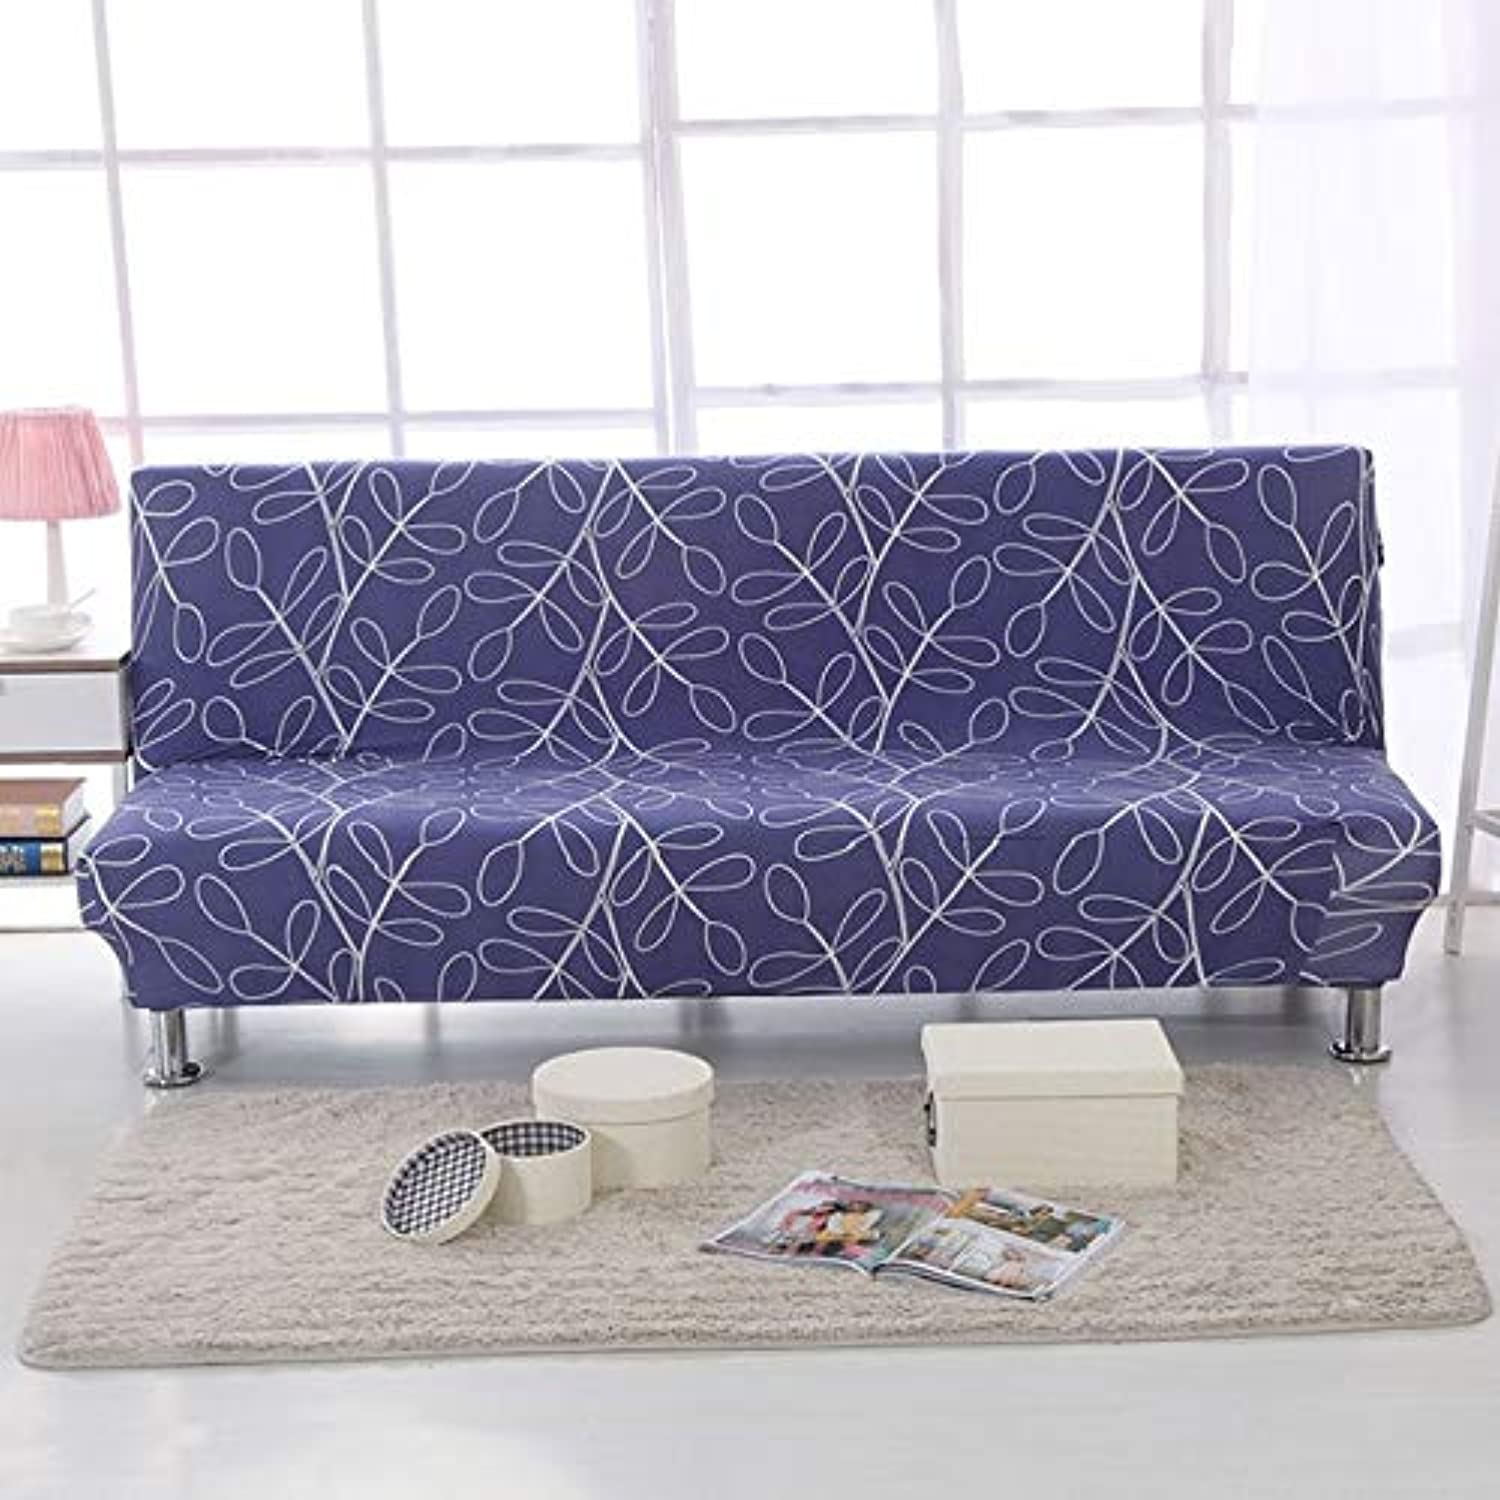 Spandex Sofa Bed Cover Stretch No armrests Tight Wrap Sofa Cover for Living Room Soft Slipcovers Elastic Couch Cover cubre Sofa   color 24, 160-190cm